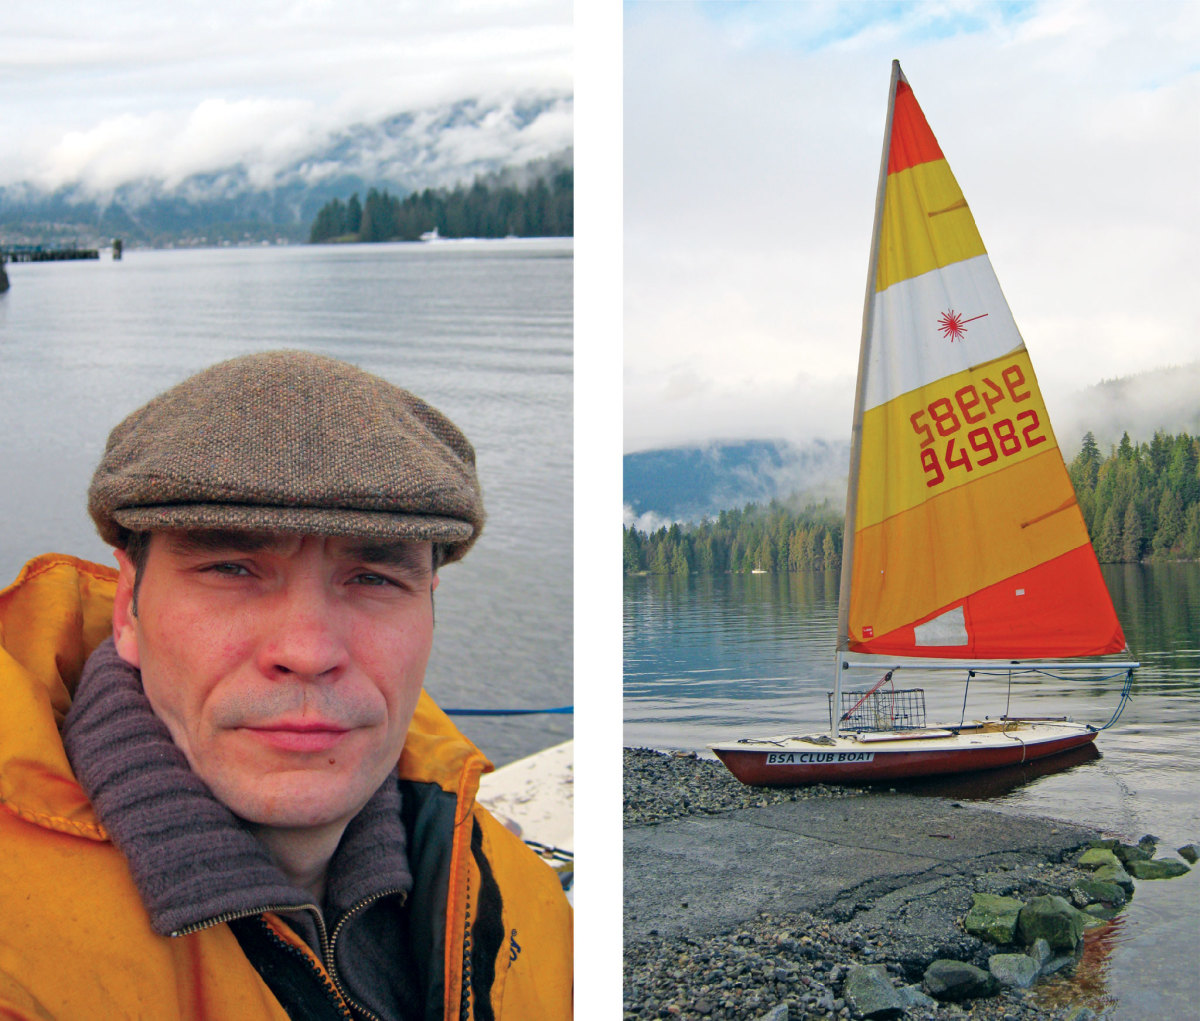 The author onboard his mighty crabbing vessel, a Laser sailboat—an unlikely perfect crabbing vessel